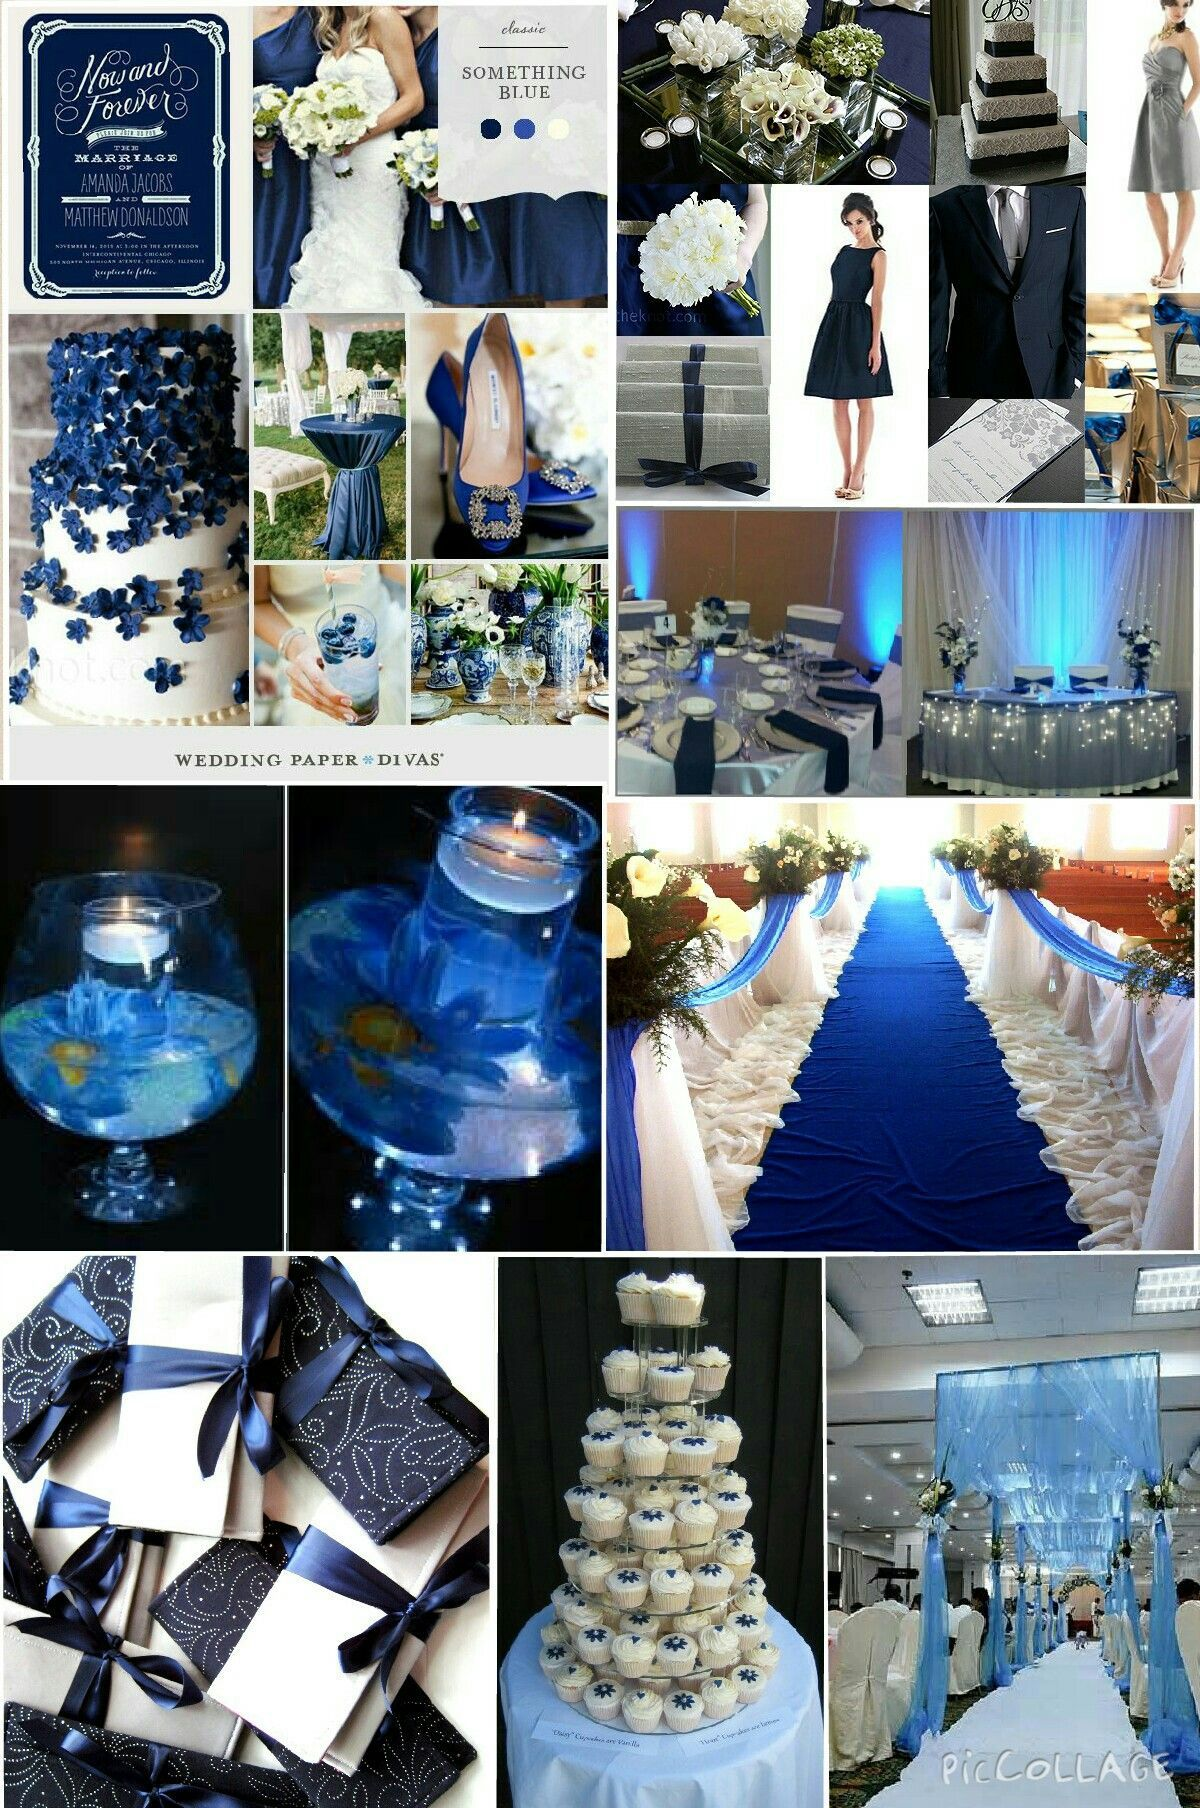 Navy Blue Wedding Theme Ideas Indian Blue And Silver Wedding Theme Ideas In 2019 Blue Si Silver Wedding Theme Blue Themed Wedding Navy Blue Wedding Theme